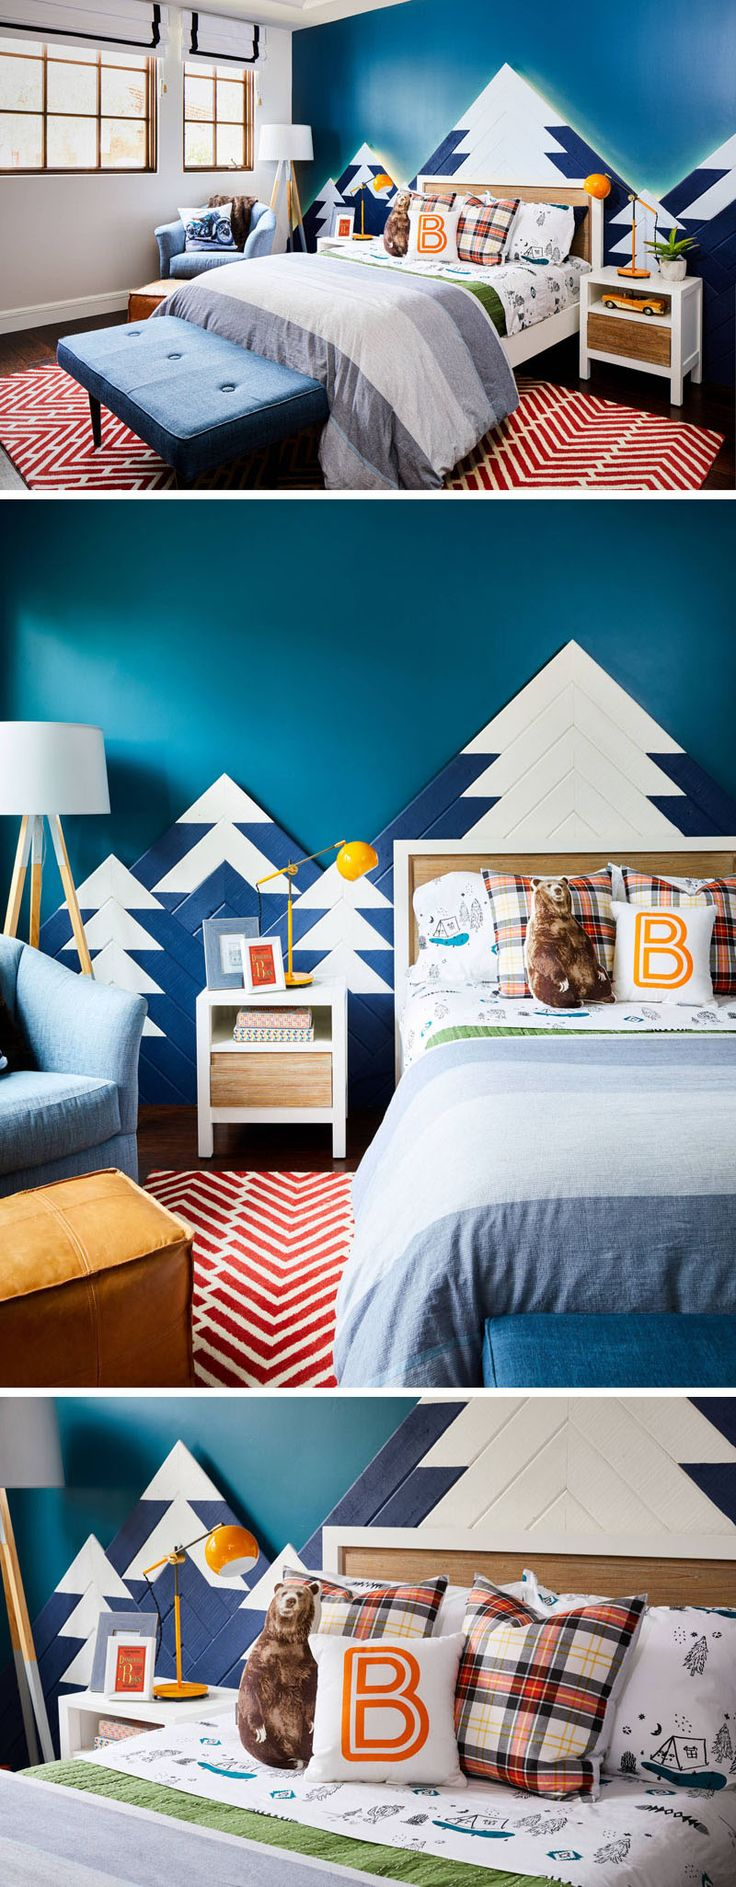 1023 best images about kid bedrooms on pinterest - Wall Design For Kids